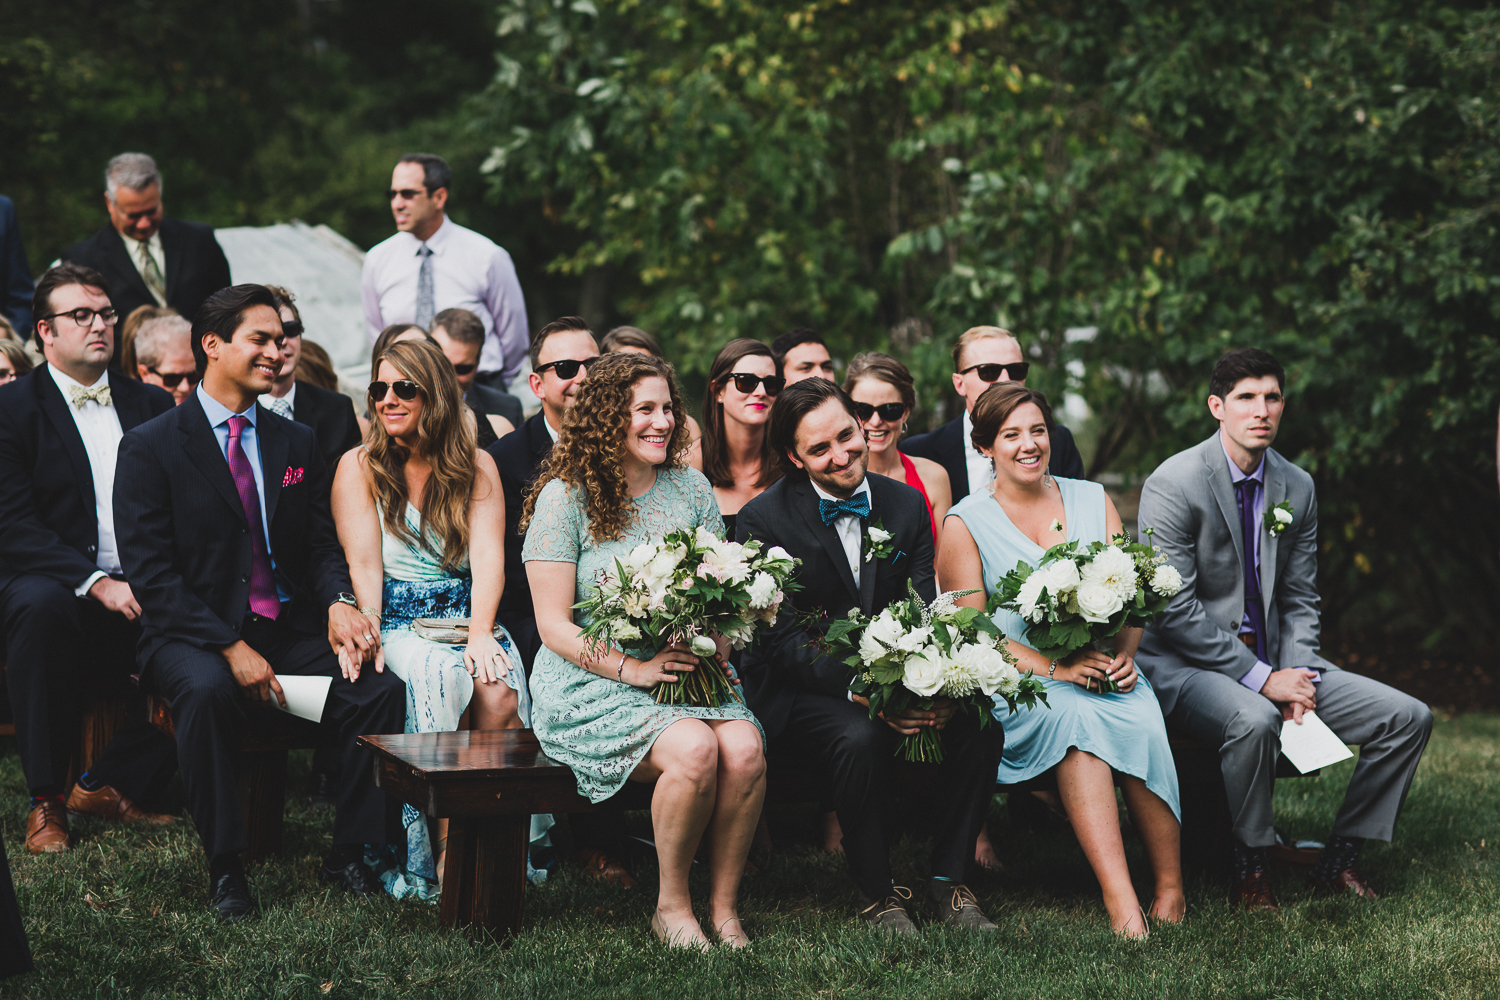 Jardin-De-Buis-Pottersville-NJ-Documentary-Wedding-Photographer-38.jpg